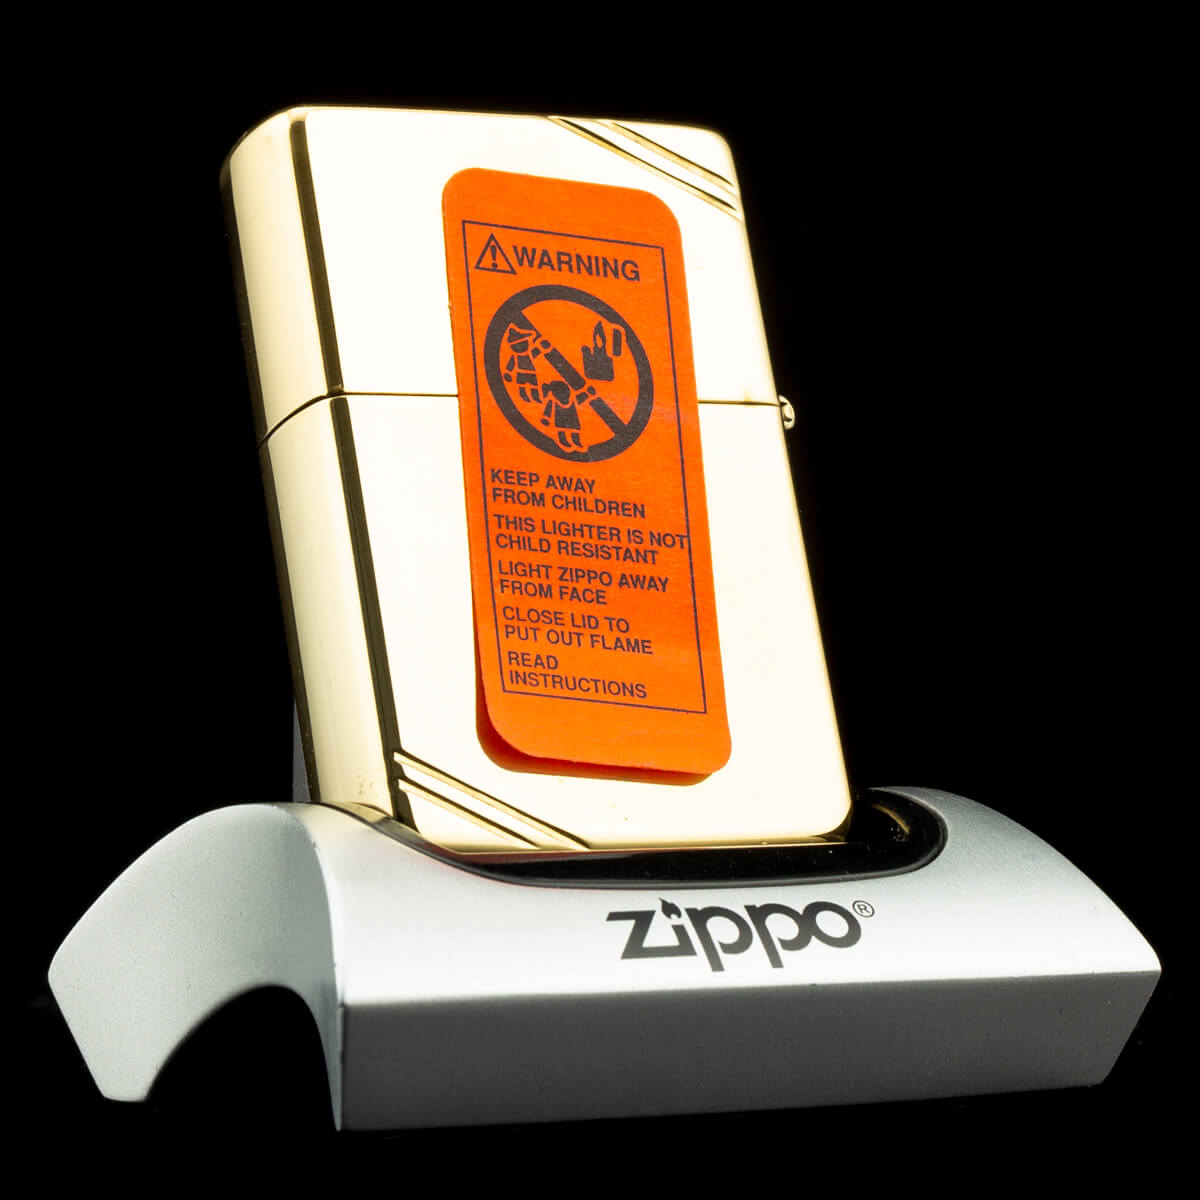 hop-quet-zippo-vintage-1937-high-polished-brass-1991-vii-chat-goc-bong-dong-khoi